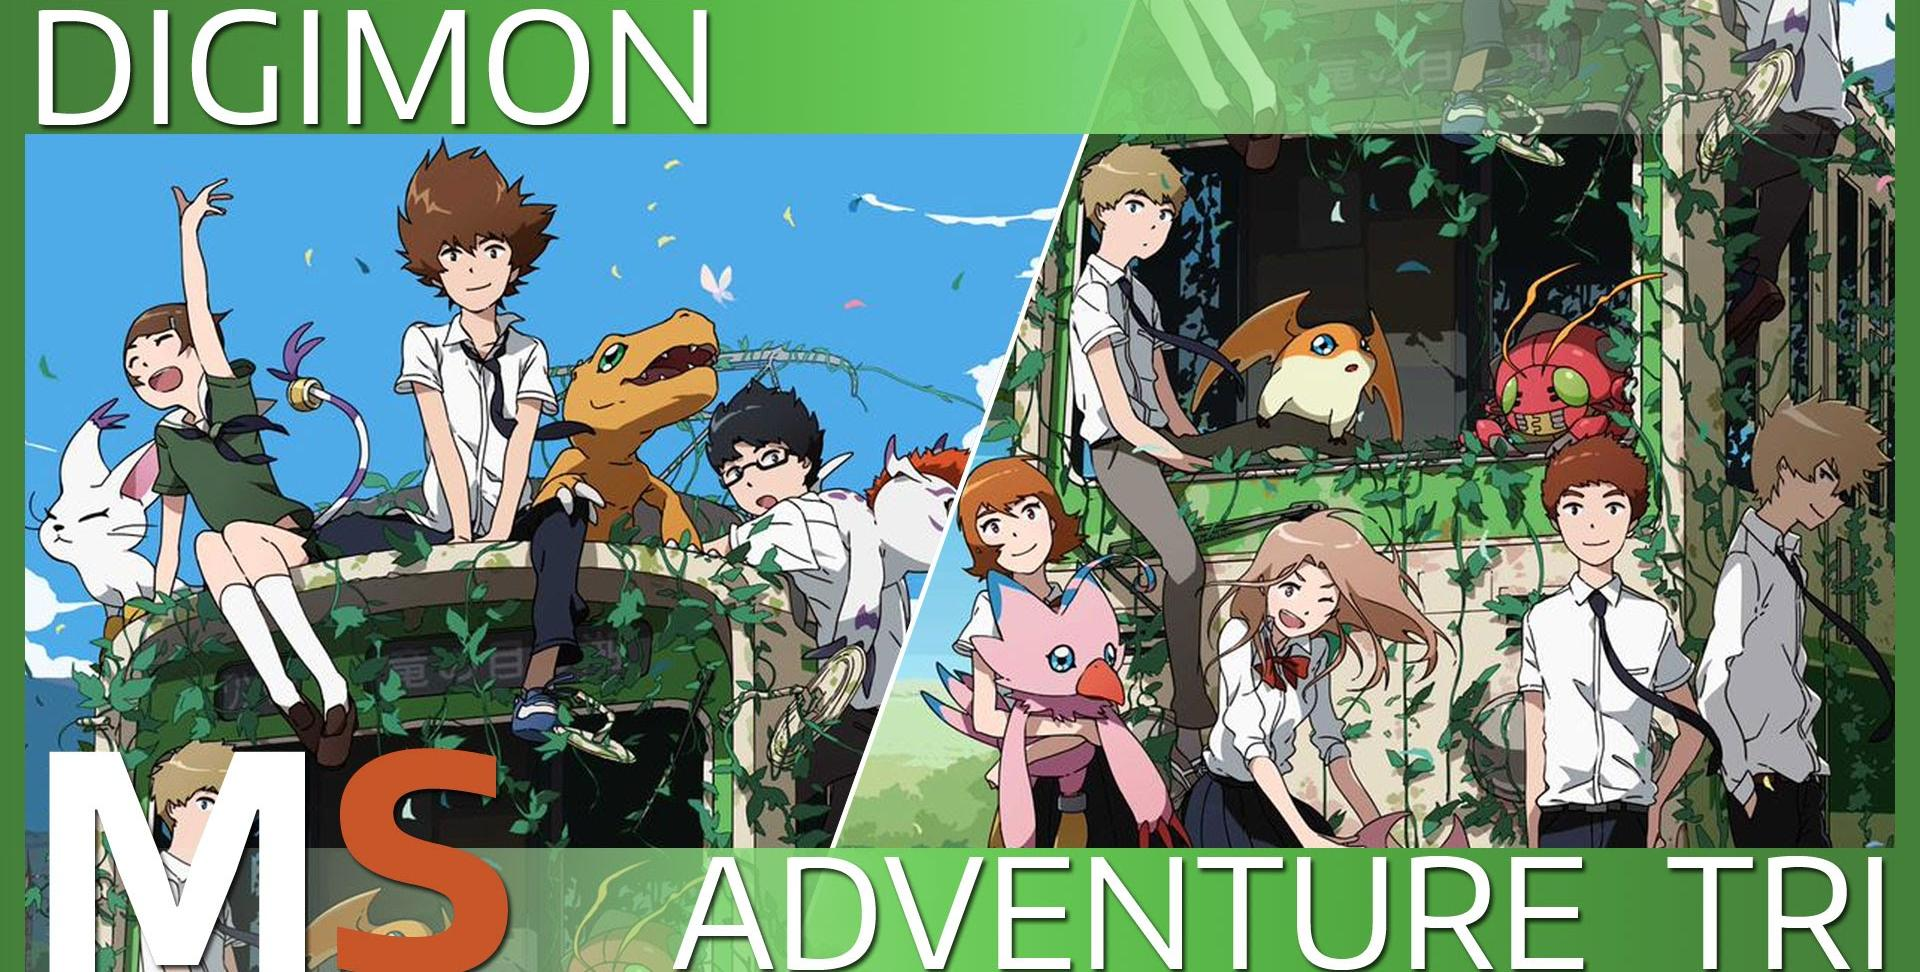 Xem phim Digimon Adventure tri. 1: Saikai - Digimon Adventure tri. Chapter 1: Reunion Vietsub